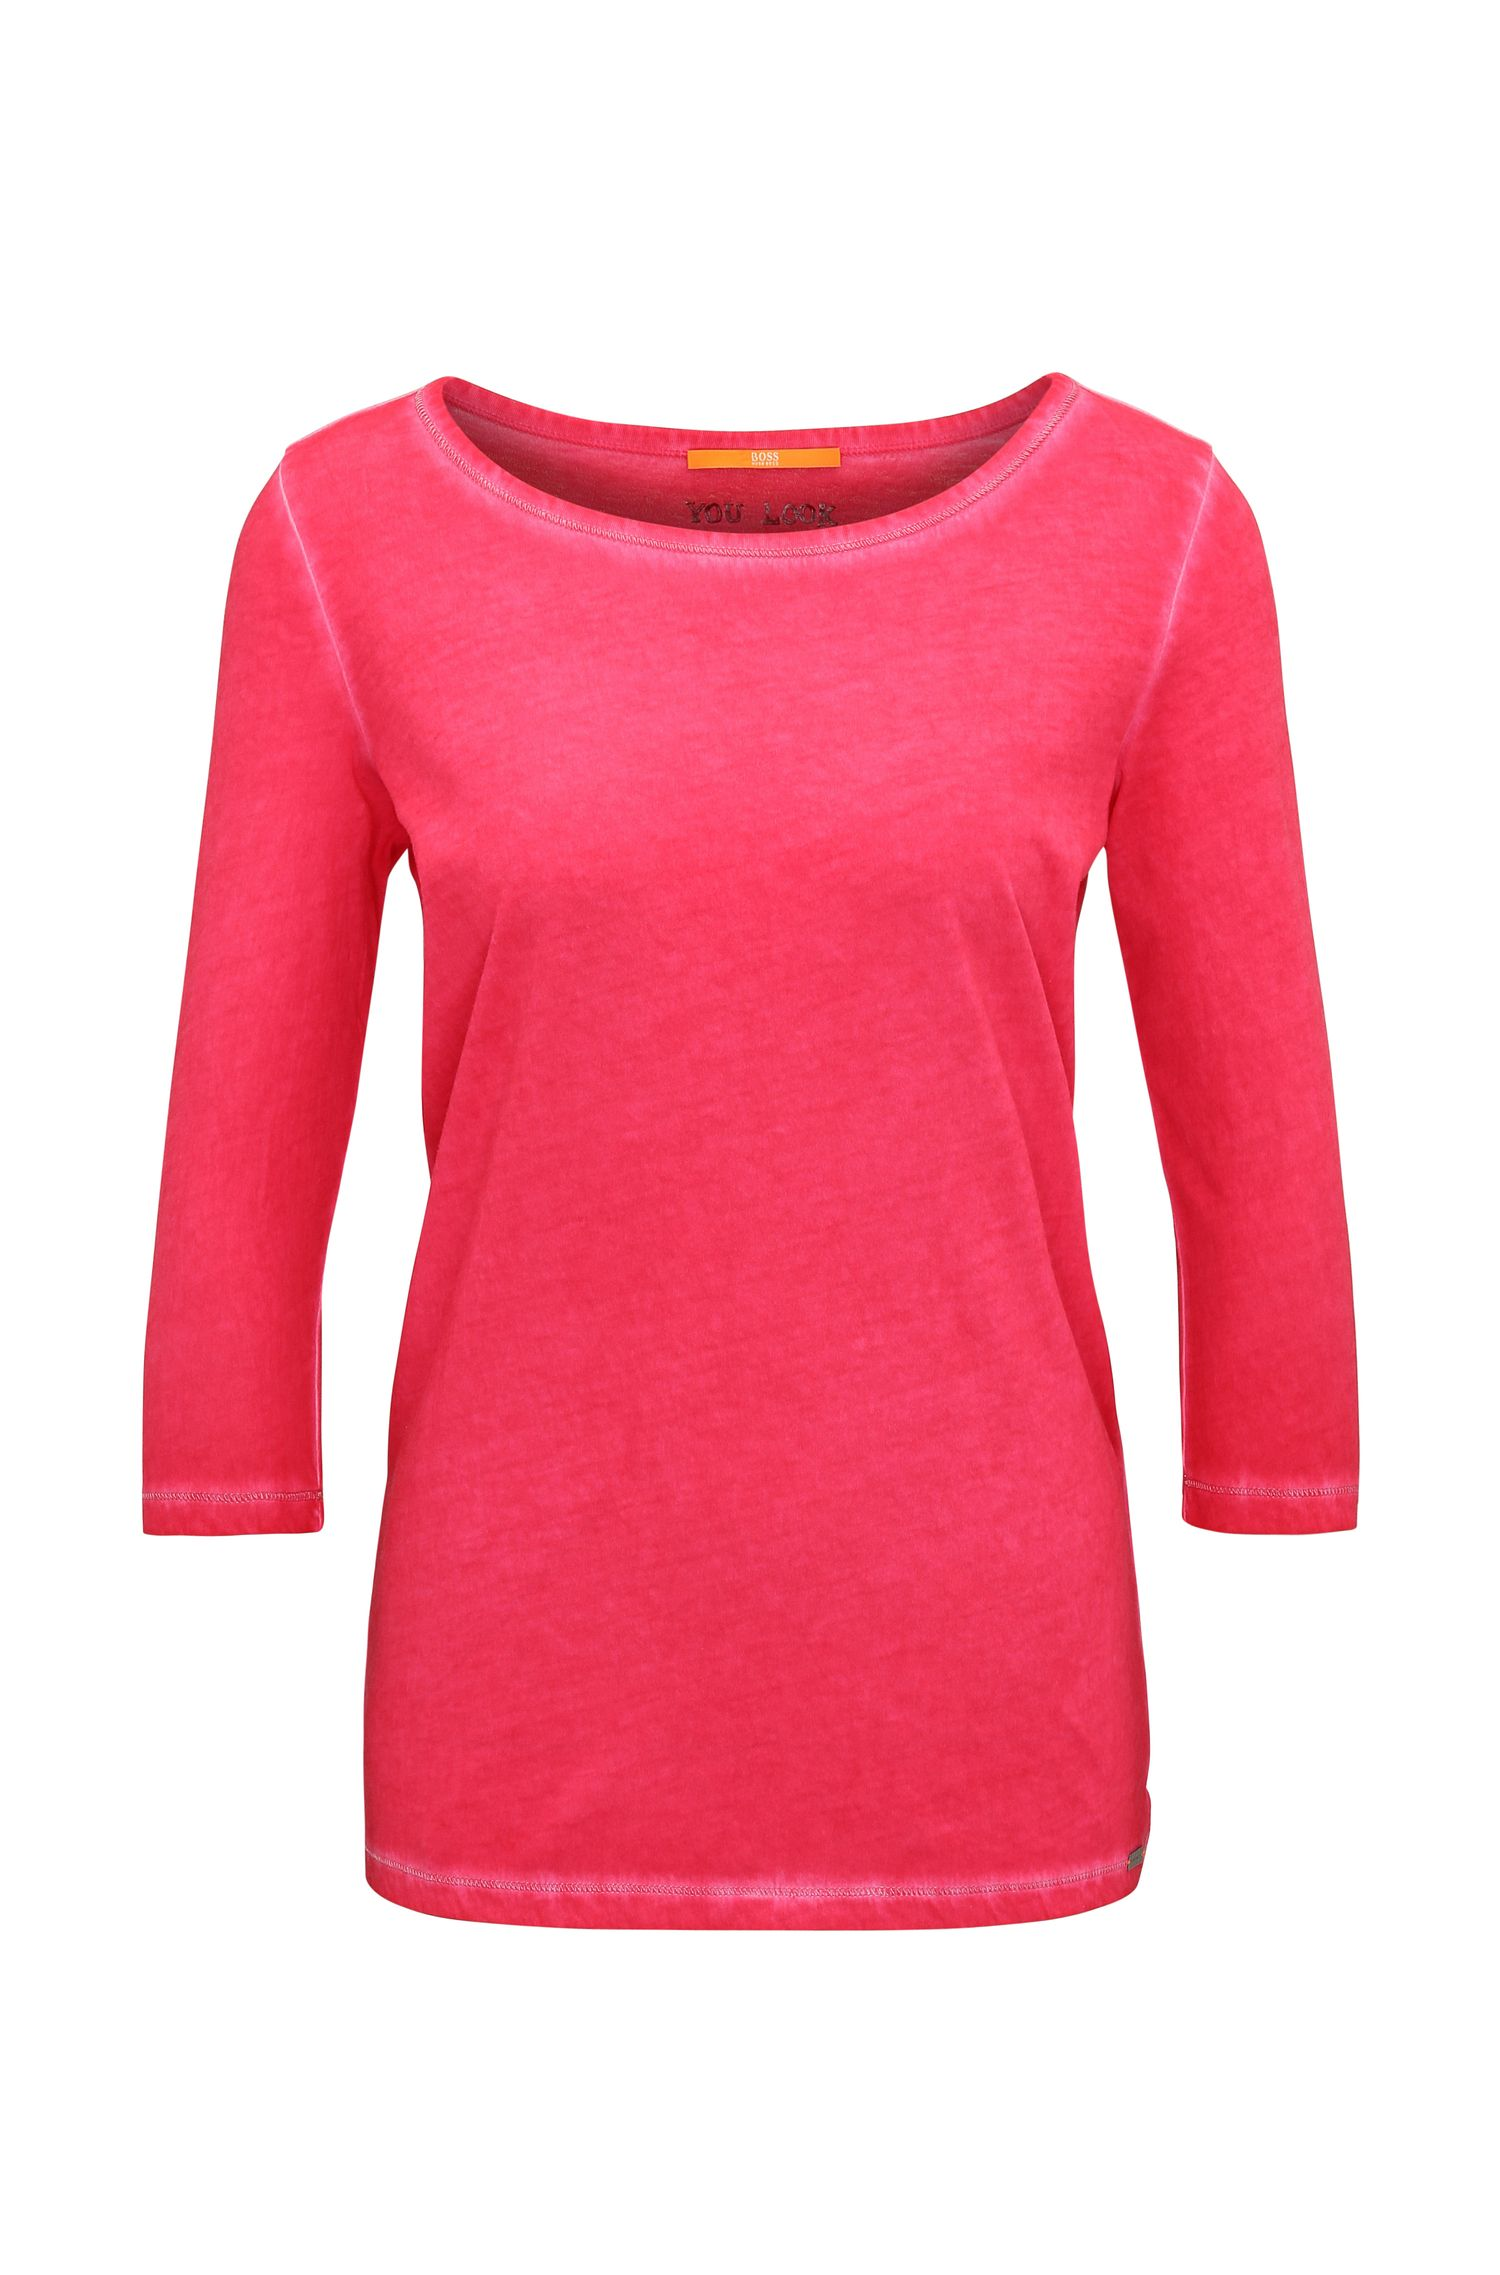 Slim-fit T-shirt in garment-dyed cotton